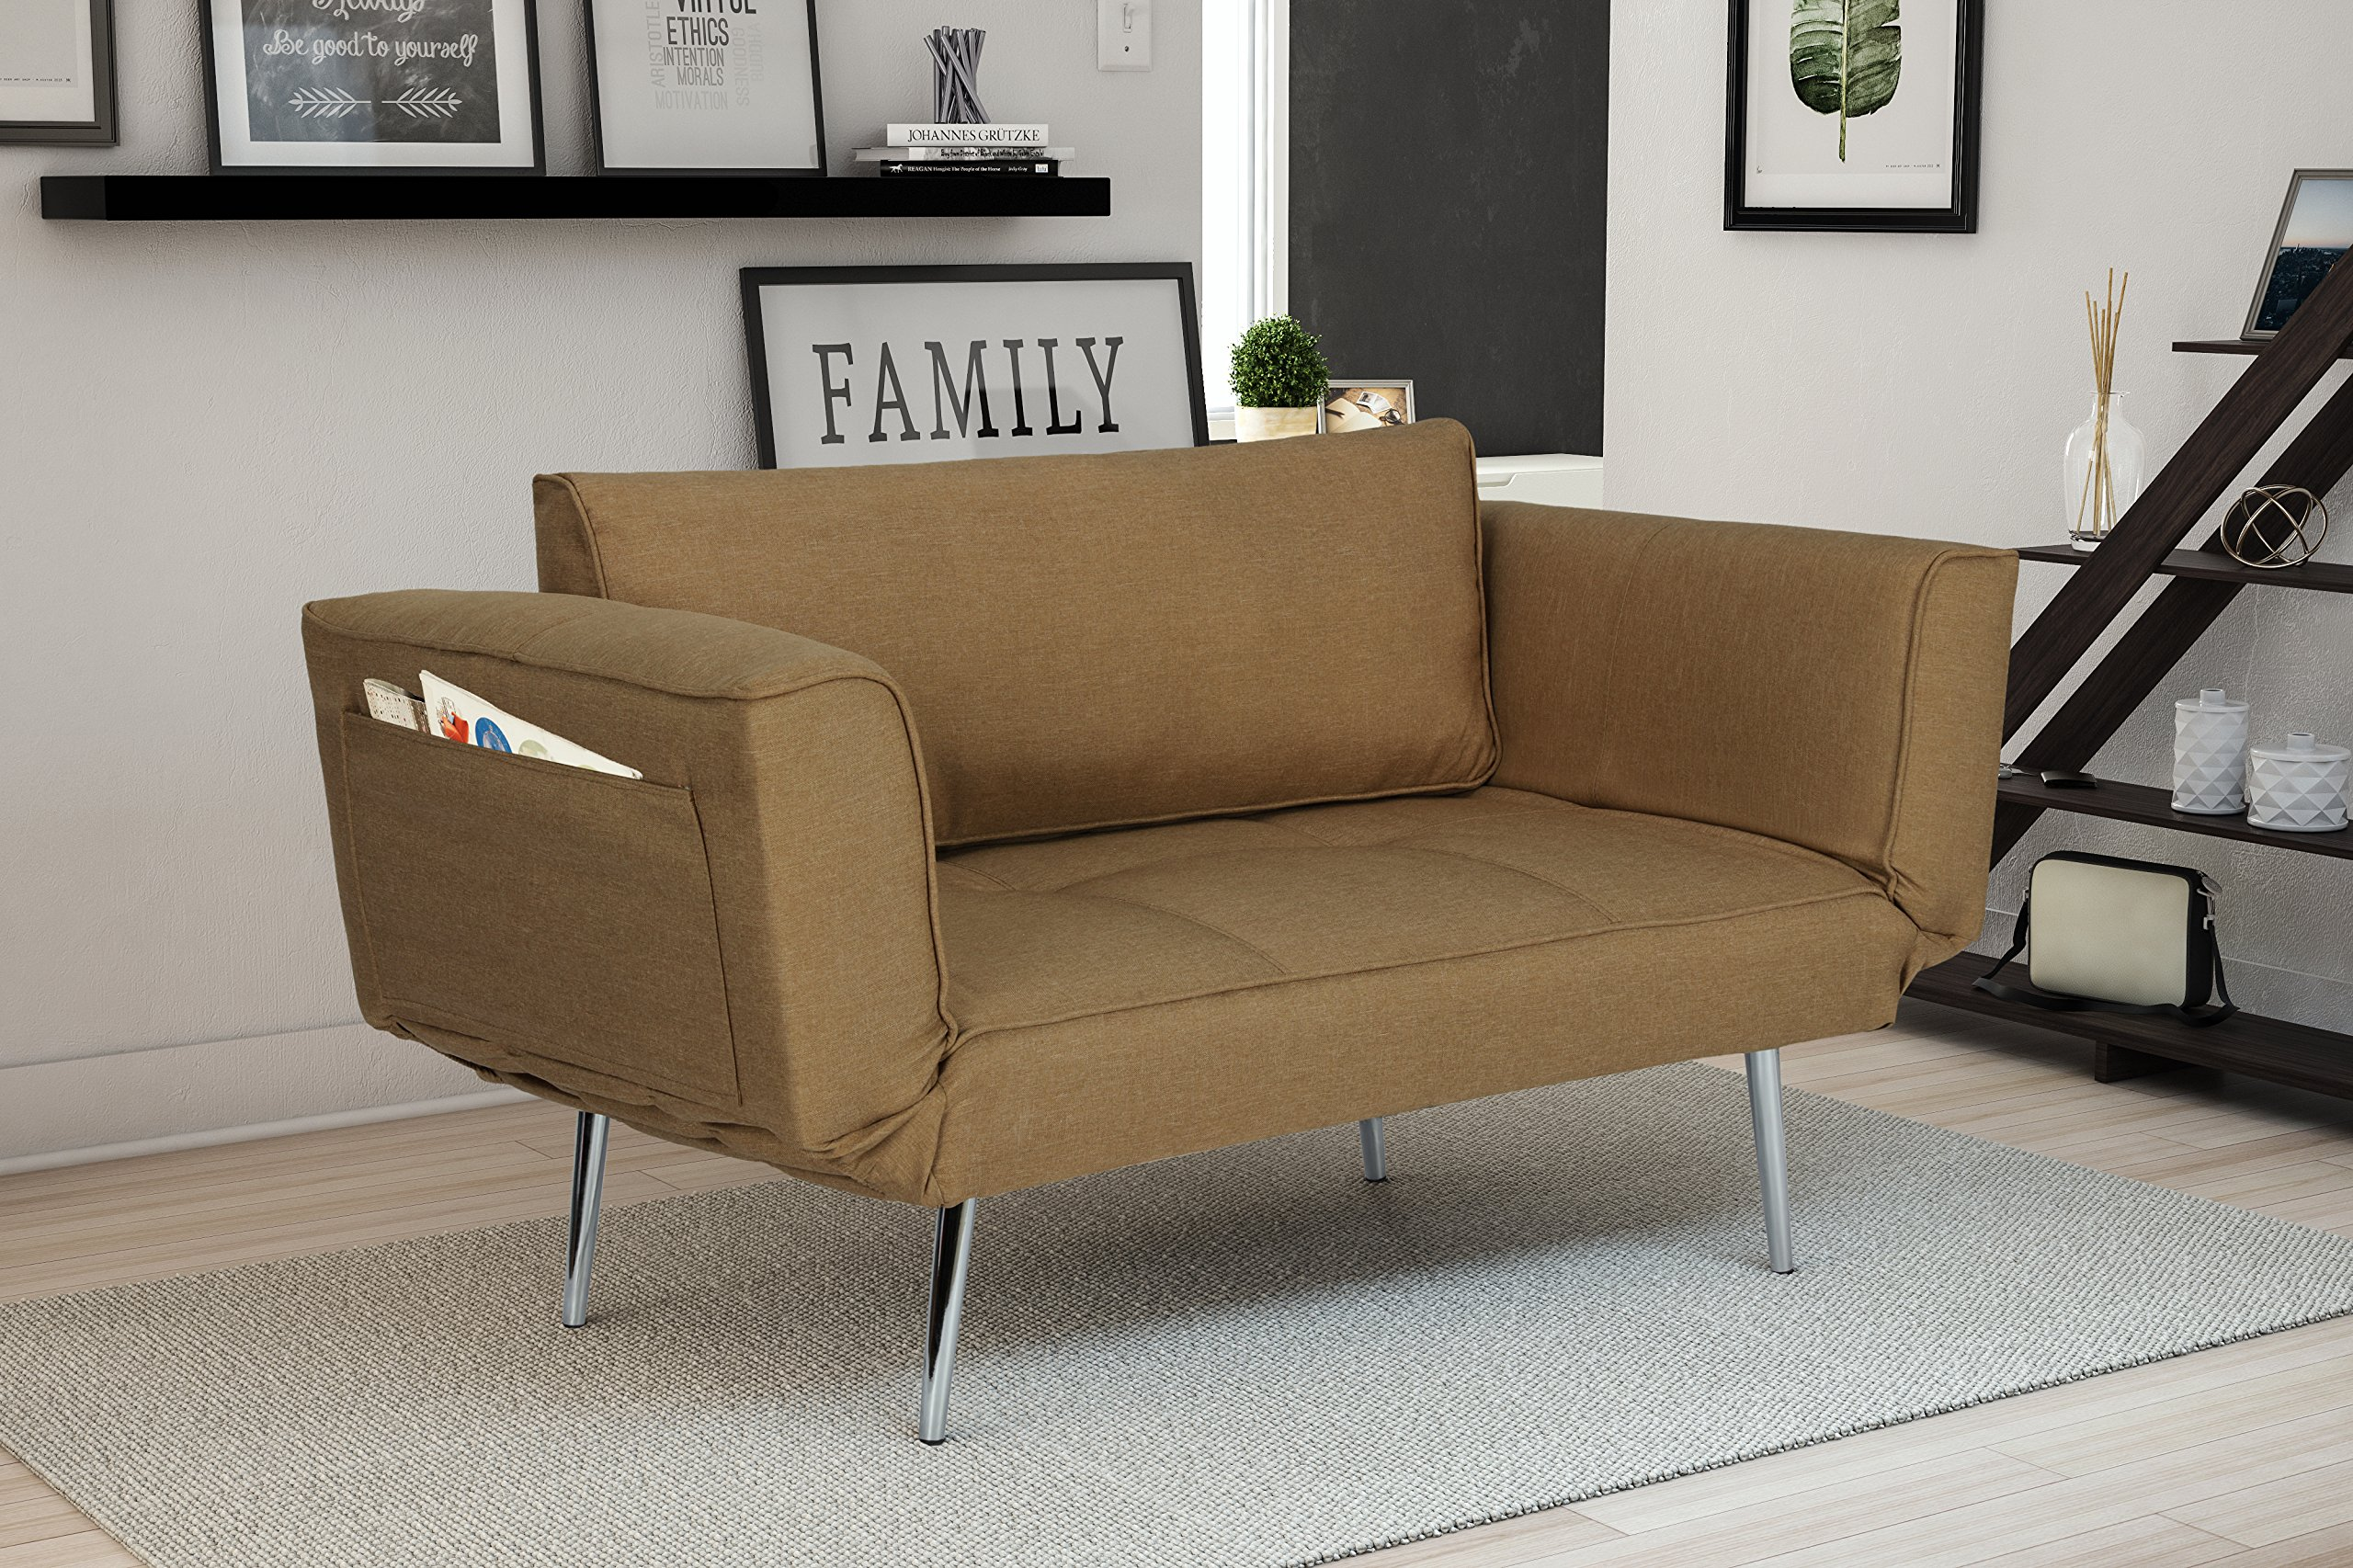 DHP Euro Sofa Futon Loveseat with Chrome Legs and Adjustable Armrests - Tan by DHP (Image #3)